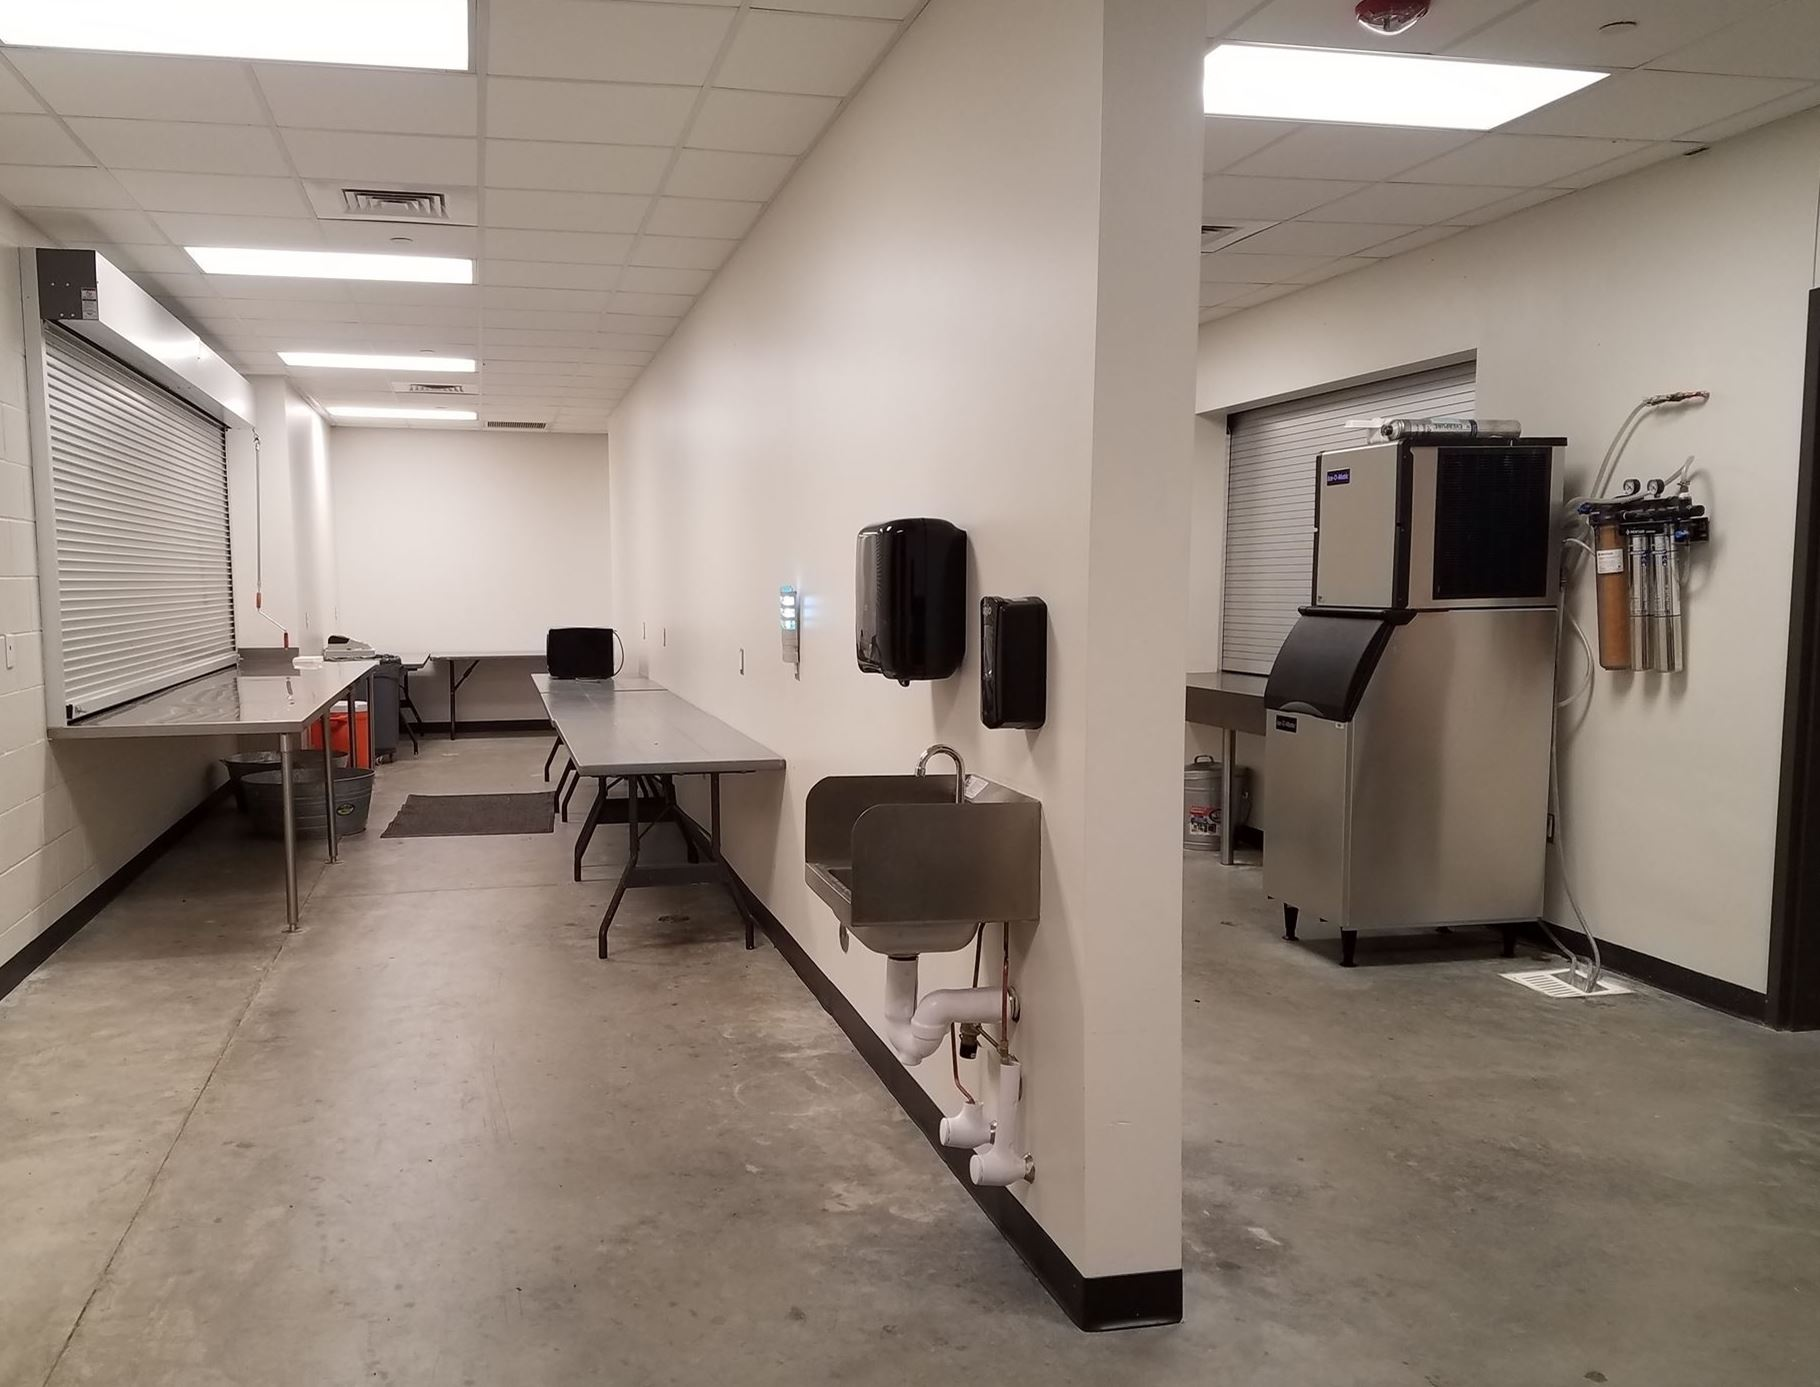 Indoor Catering Kitchen with ice machines and tables